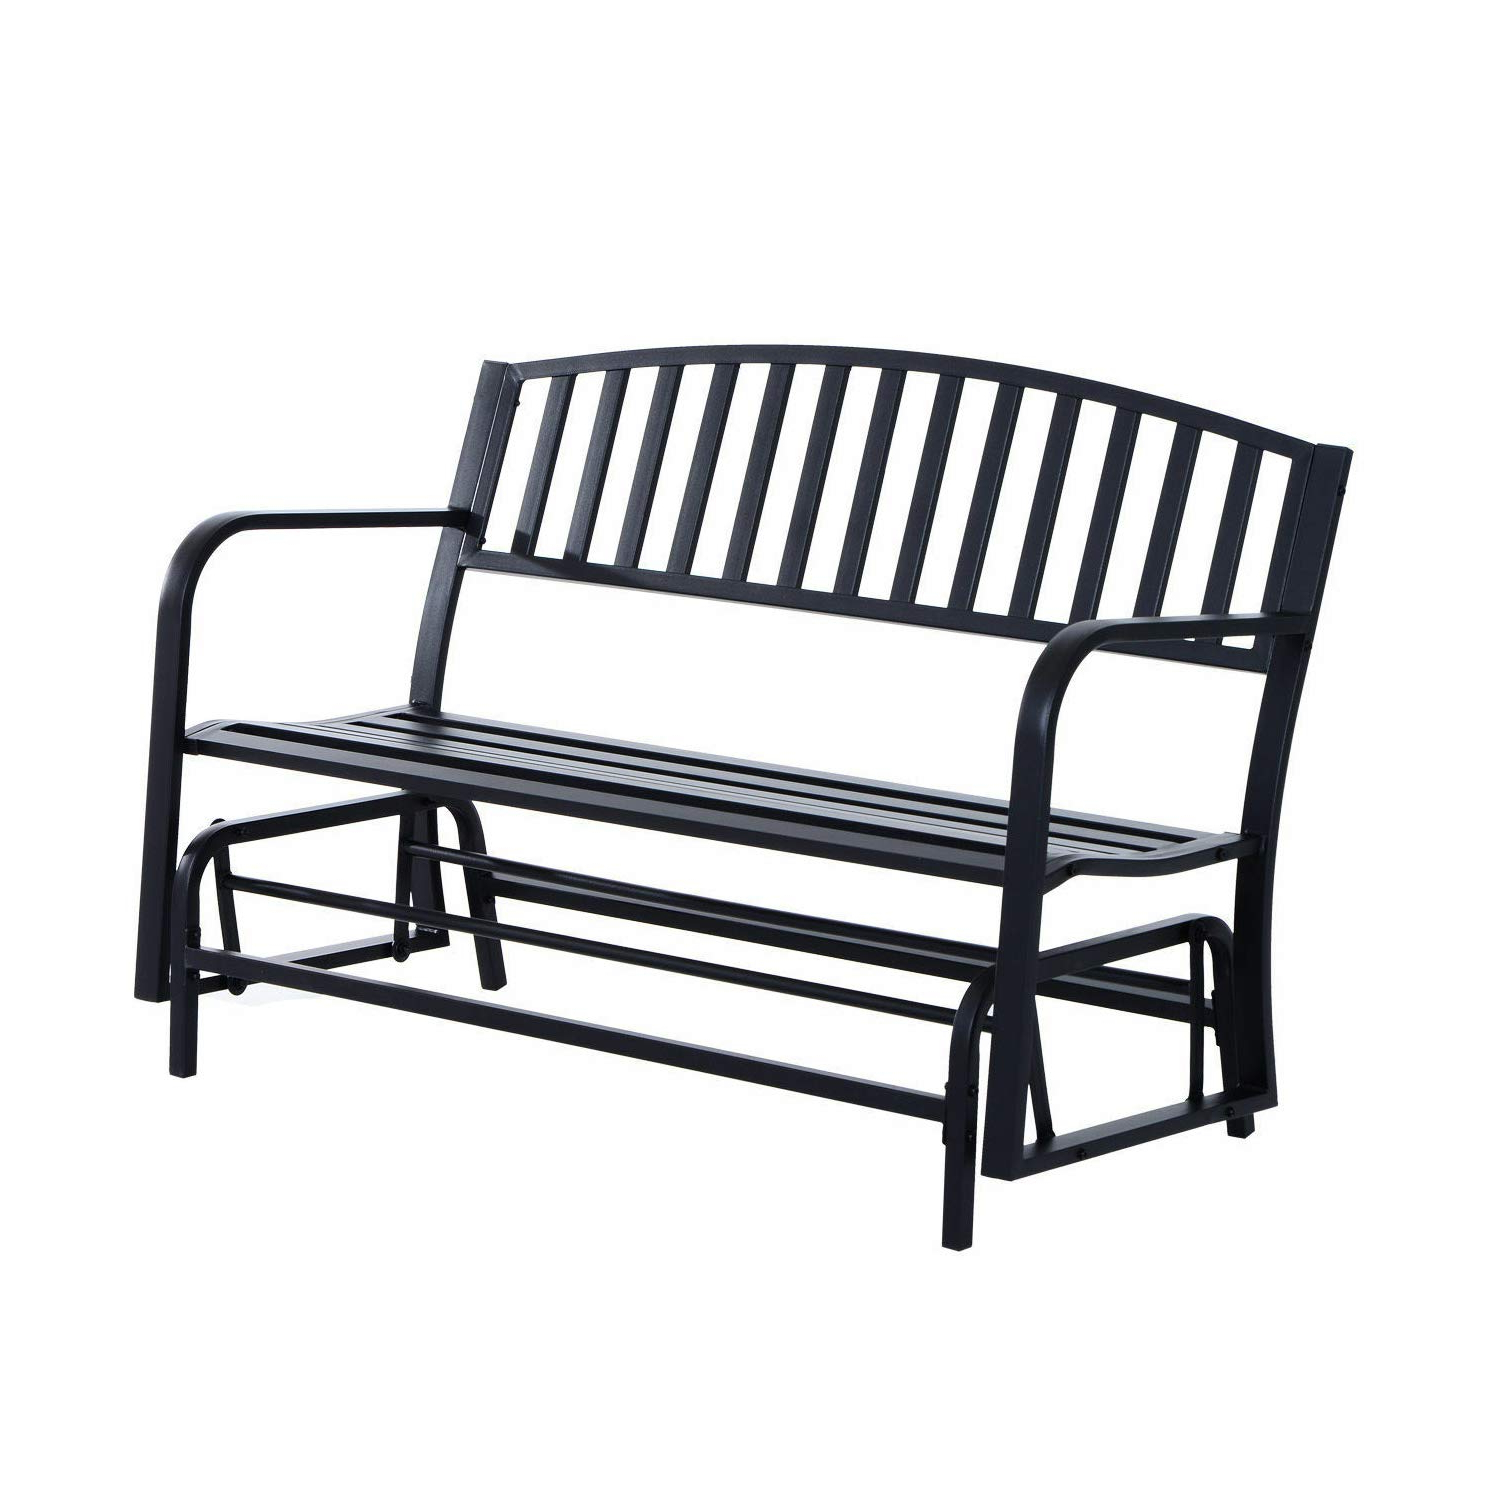 Well Liked Amazon : Black Patio Swing Glider Bench For 2 Persons For Black Steel Patio Swing Glider Benches Powder Coated (View 30 of 30)